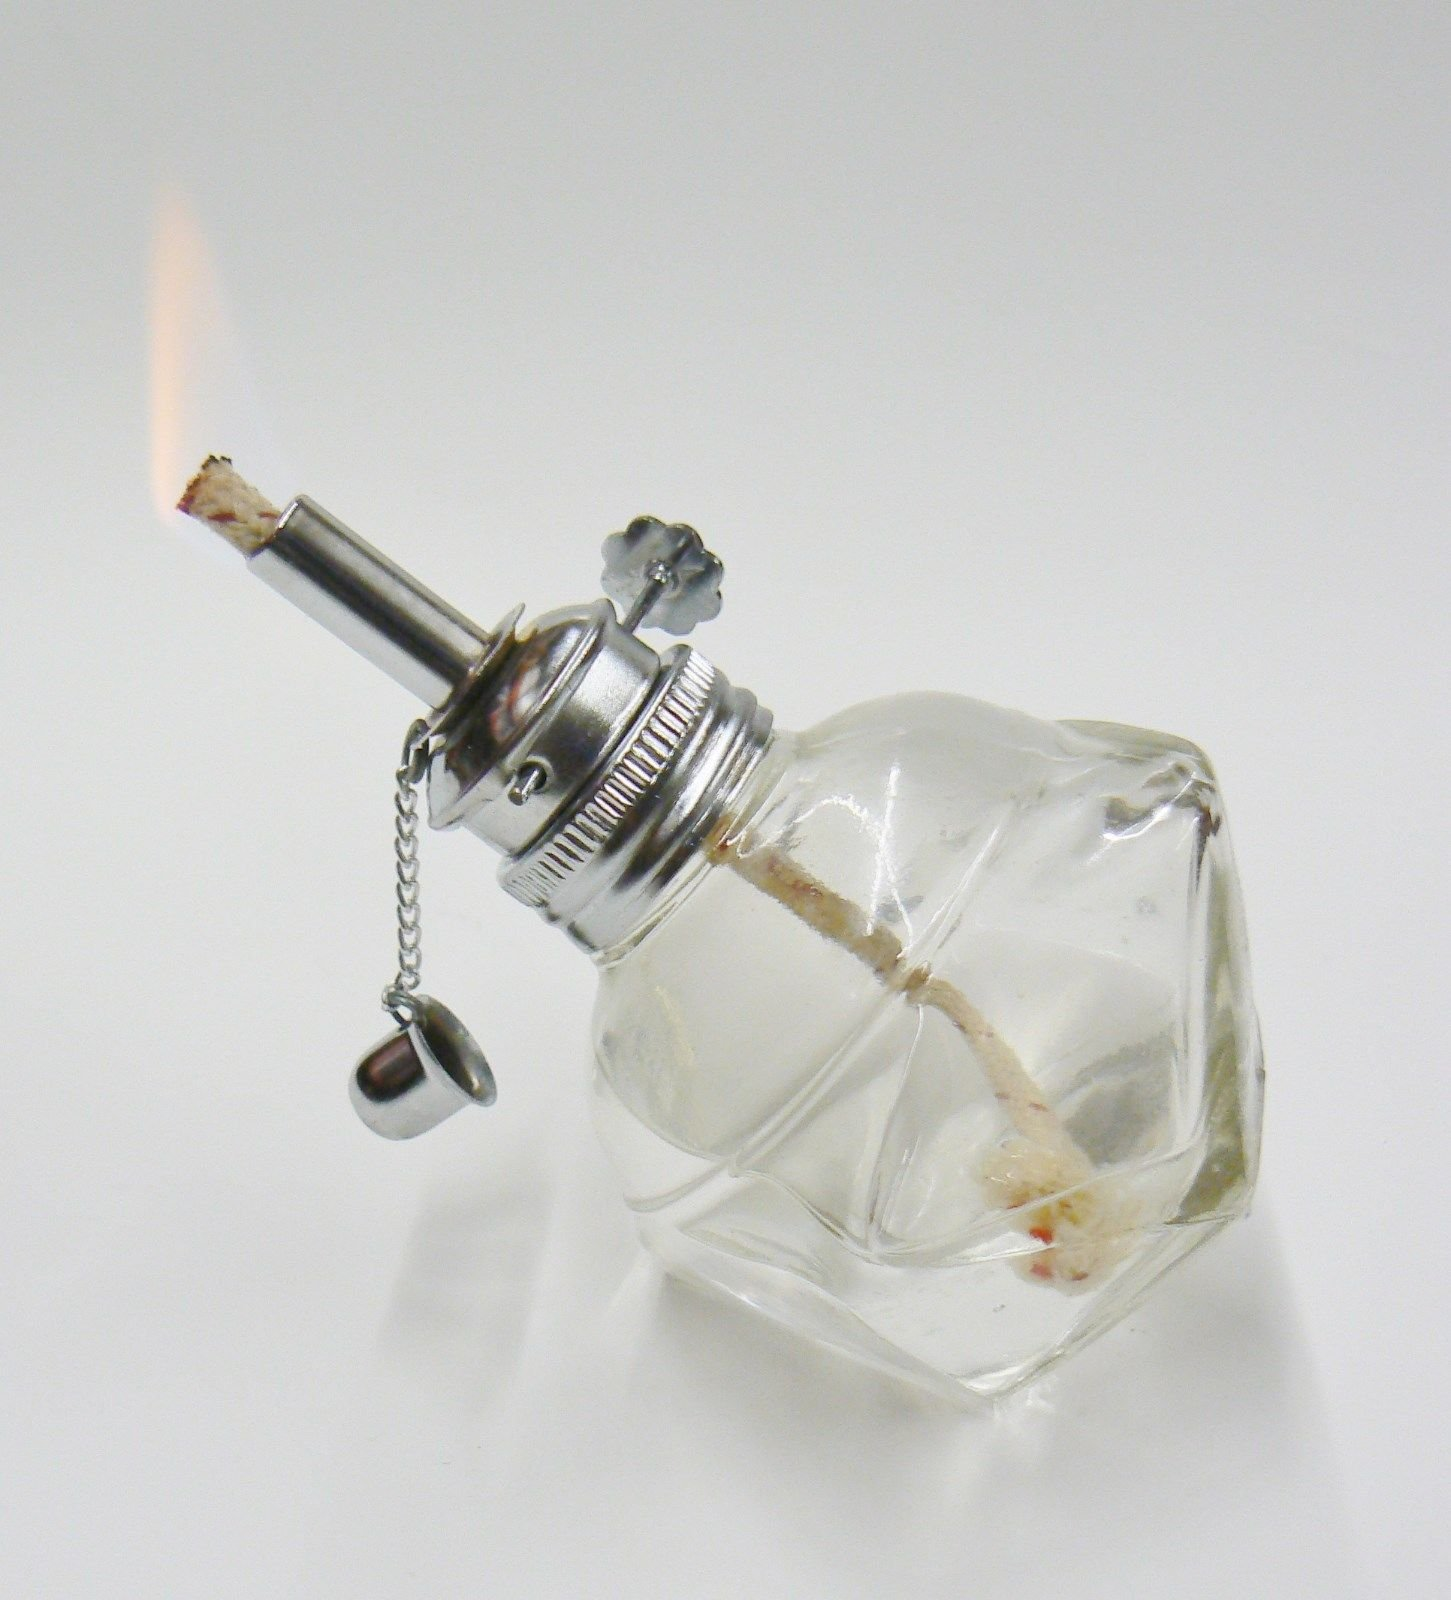 Alcohol Lamp Glass Spirit Lamp Burner Faceted Sides & Adjustable Wick Wax Work by EUROTOOL (Image #7)